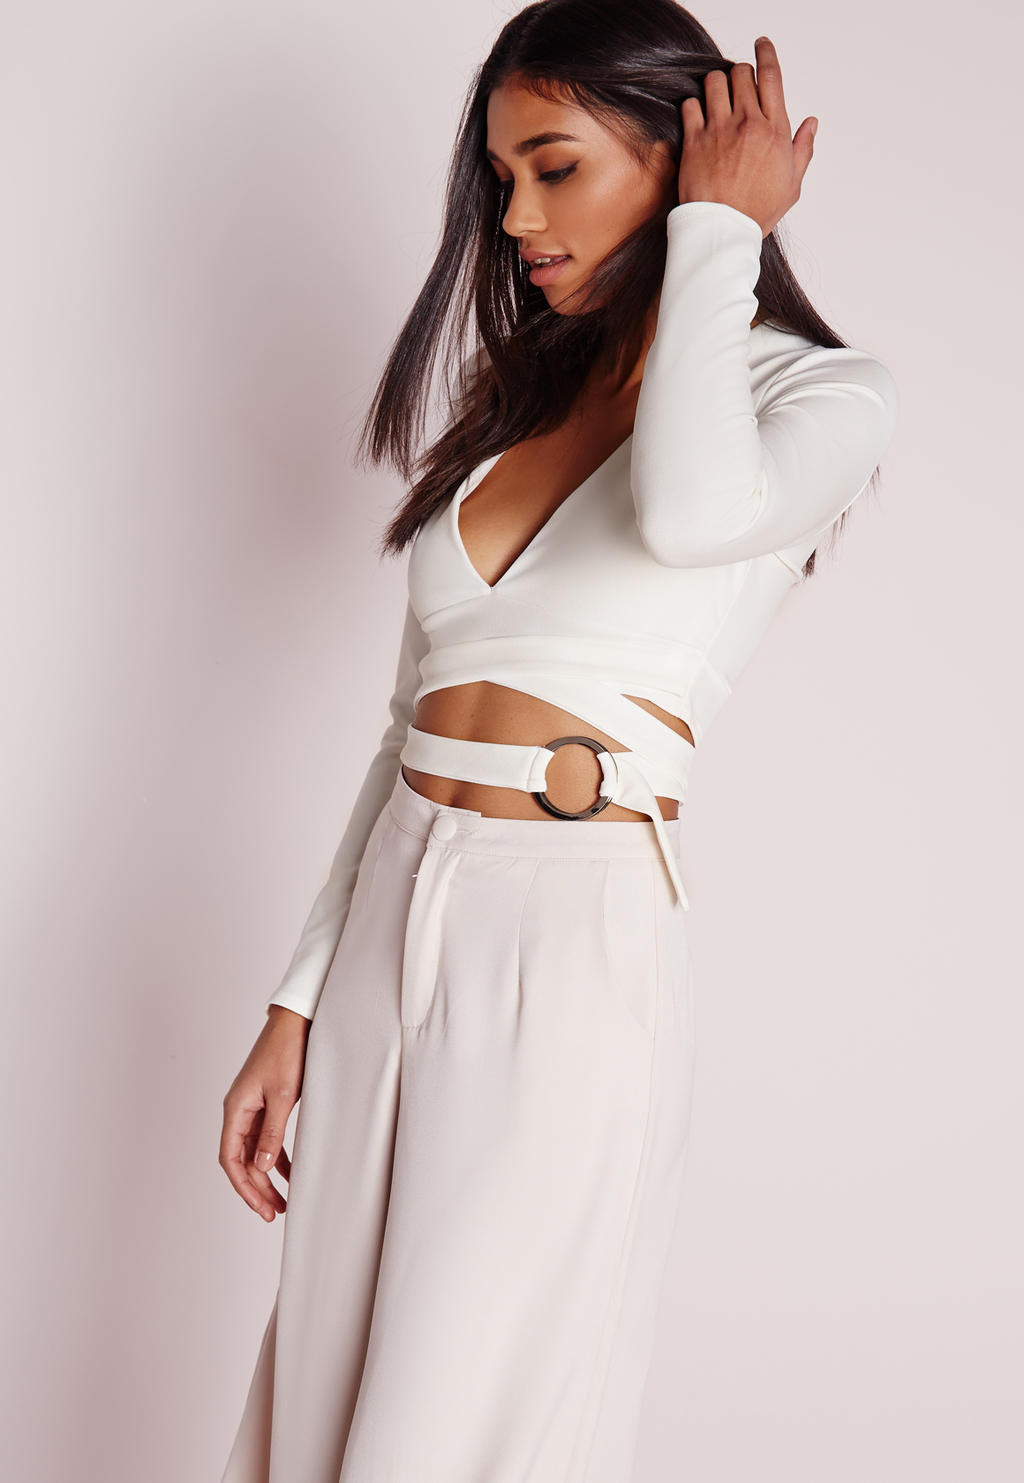 Tie Waist Crop Top White, White - neckline: low v-neck; pattern: plain; length: cropped; predominant colour: ivory/cream; occasions: evening; style: top; fibres: polyester/polyamide - stretch; fit: body skimming; sleeve length: long sleeve; sleeve style: standard; pattern type: fabric; texture group: jersey - stretchy/drapey; season: s/s 2016